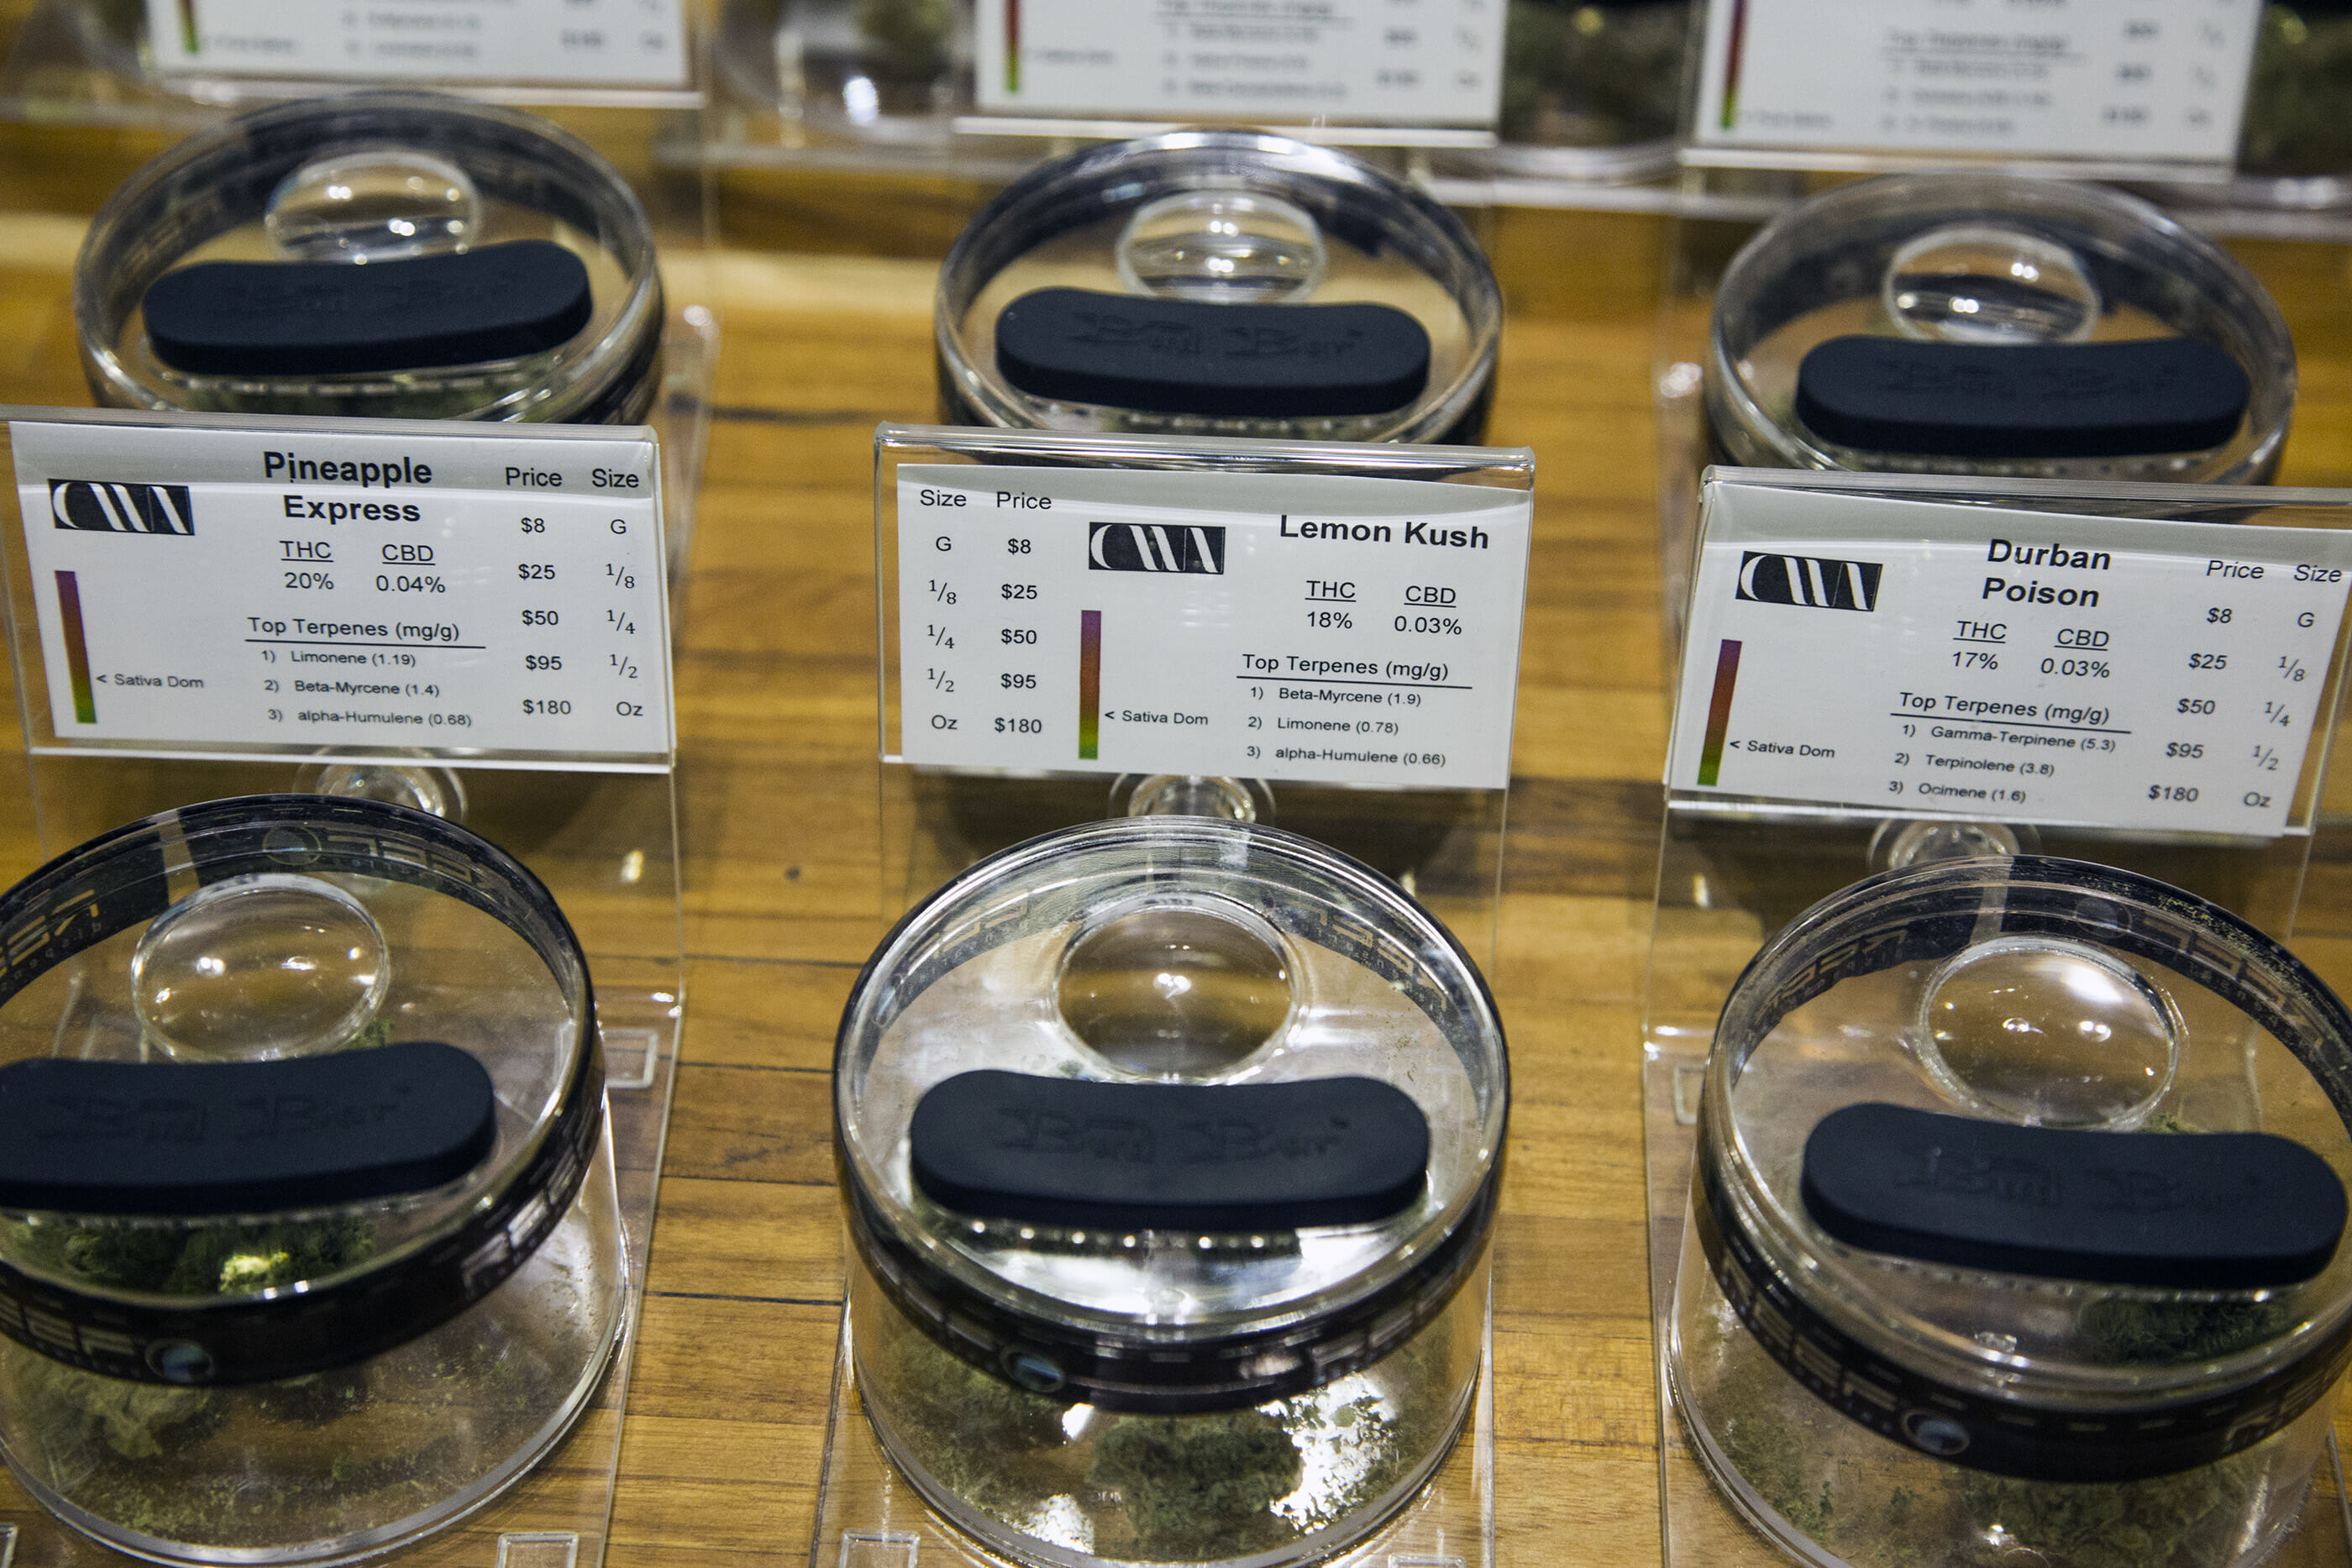 Cannabis strains on display